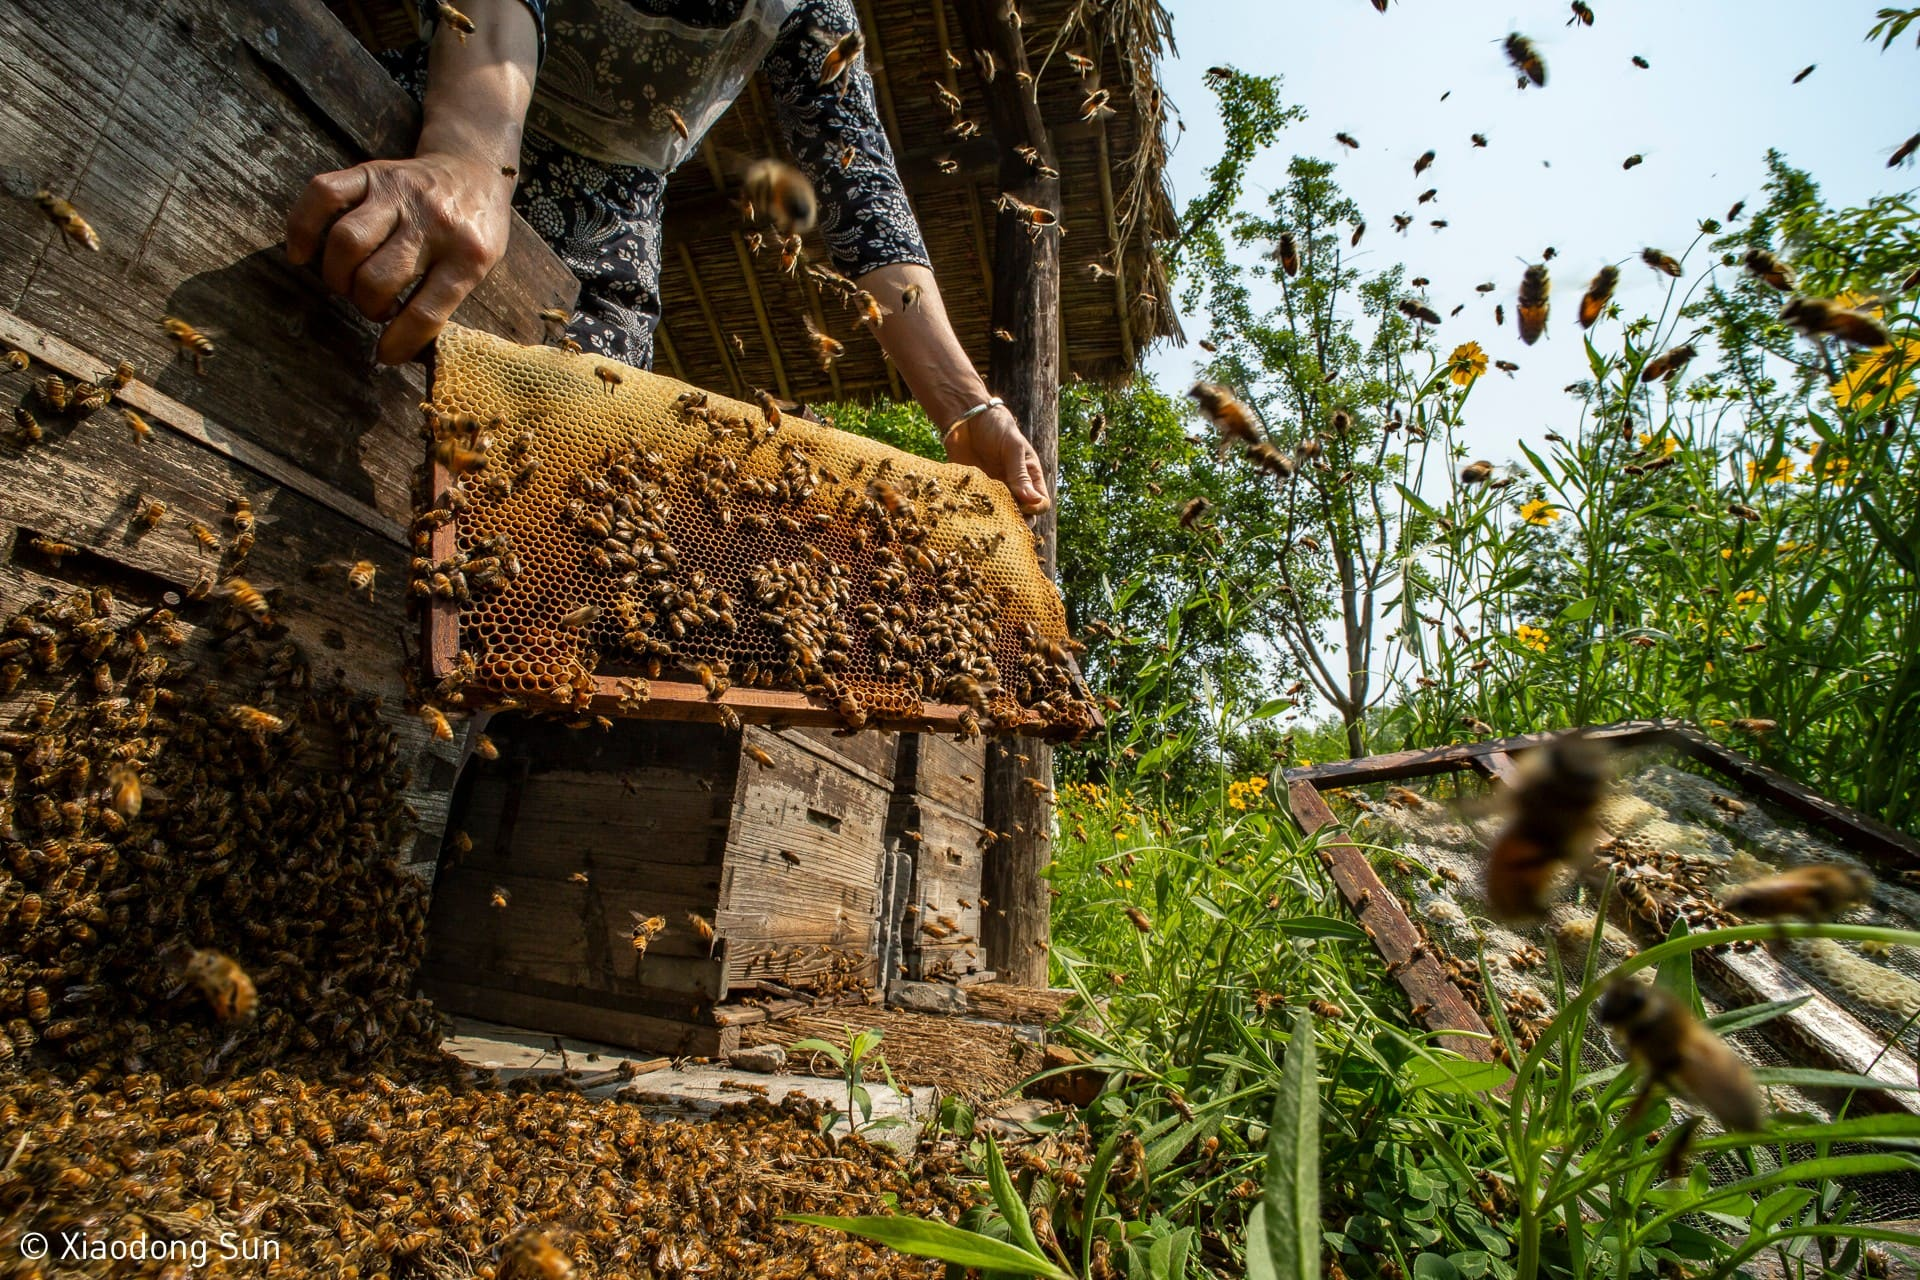 Food in the Field - When the Hive is Filled by Xiaodong Sun